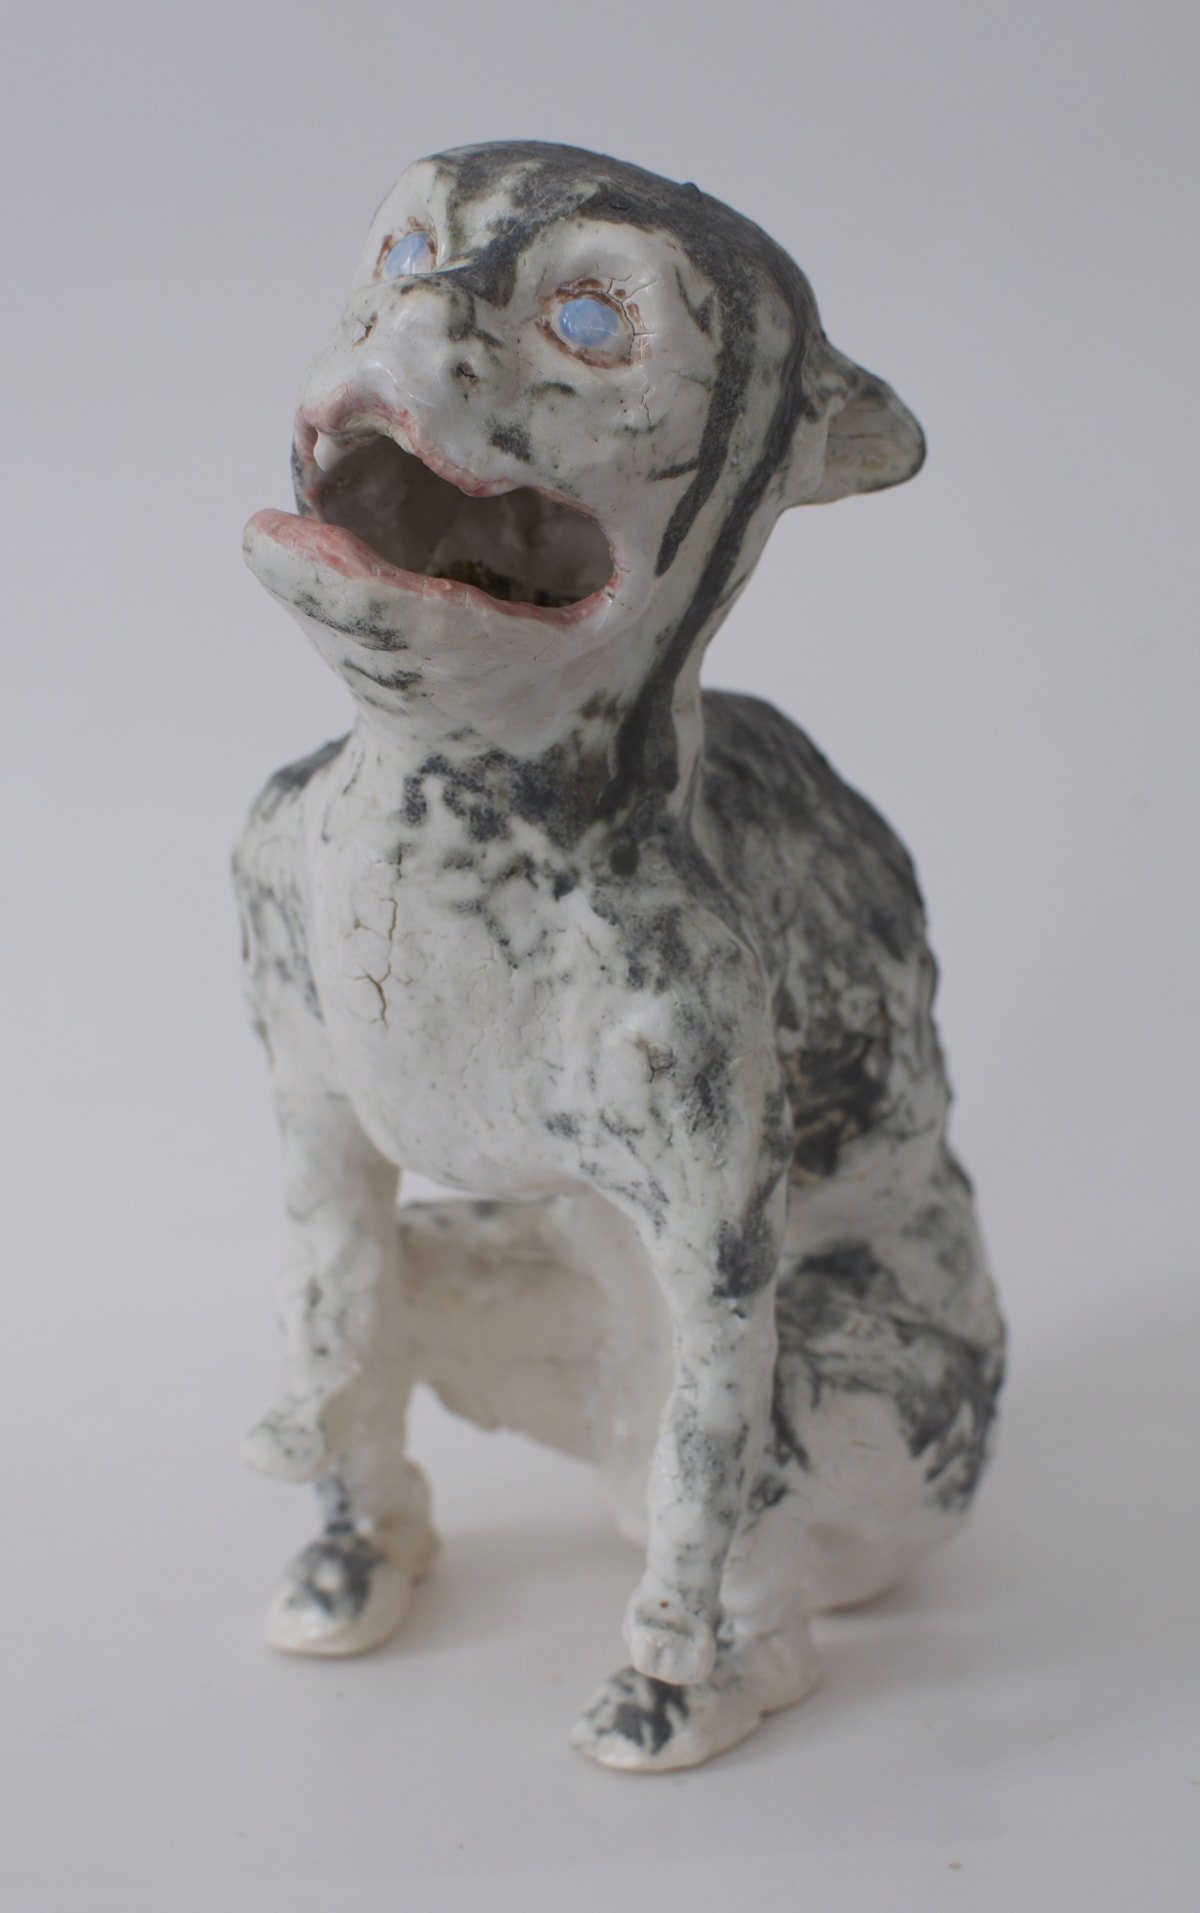 """Mary Carlson's """"Dog Demon"""" made with glazed stoneware in gray, blue and pink color. The sculpture resembles an unusual looking dog barking hence its """"demon"""" name."""